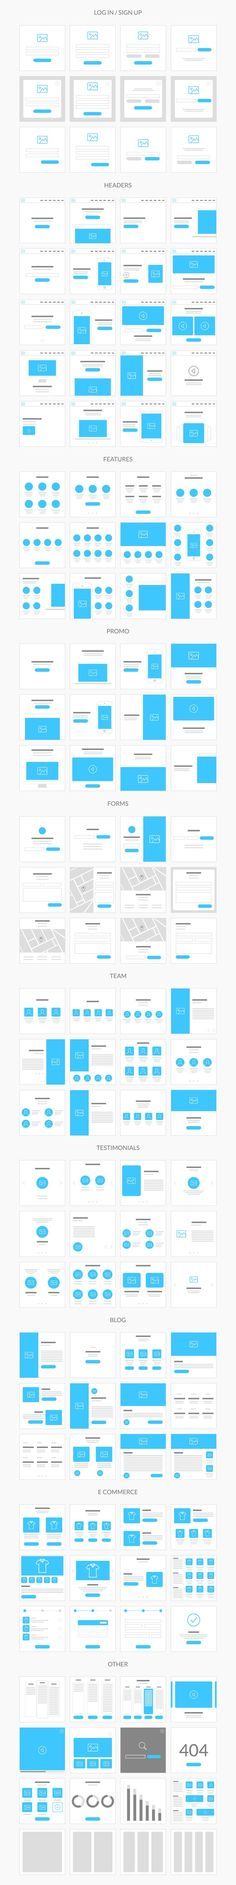 Flowy is made with fast workflow in mind, so we created 236 ready to use templates, built on the 1170 grid and in Photoshop file format. You can create flowcharts for both mobile and web projects of any complexity and show them to your team or clients in …